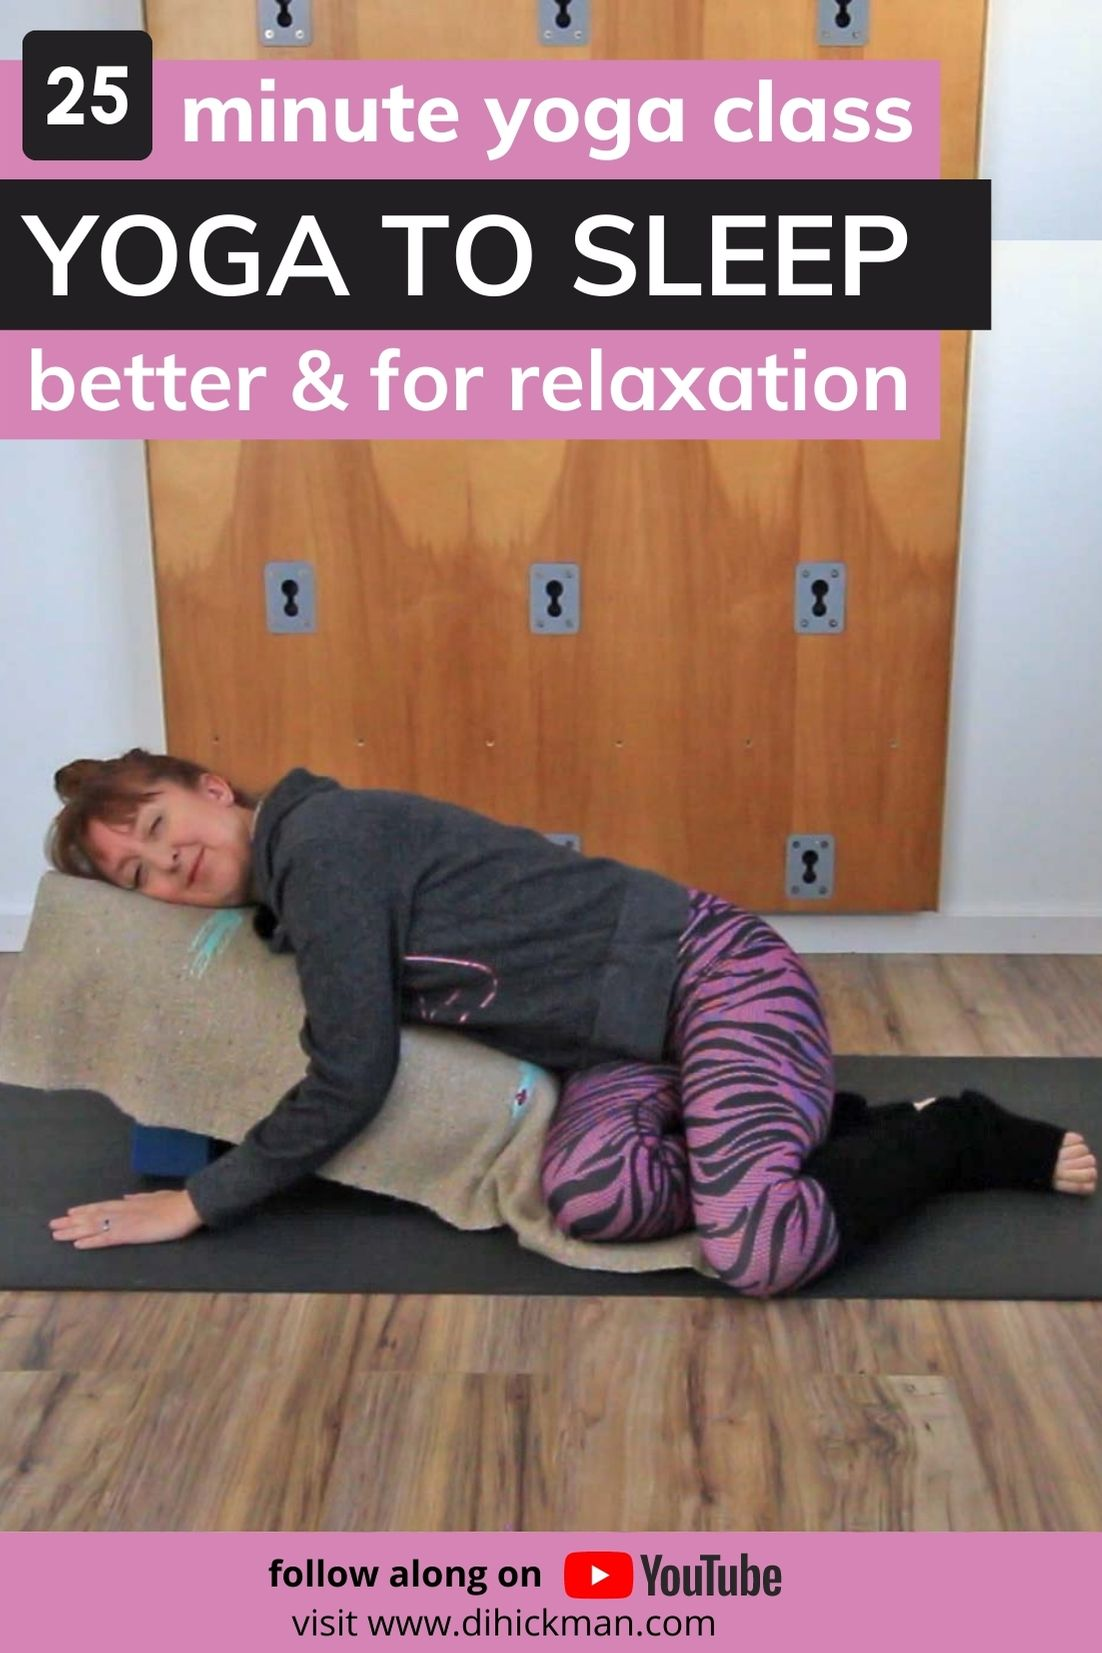 25 minute yoga class, Yoga to sleep better & for relaxation